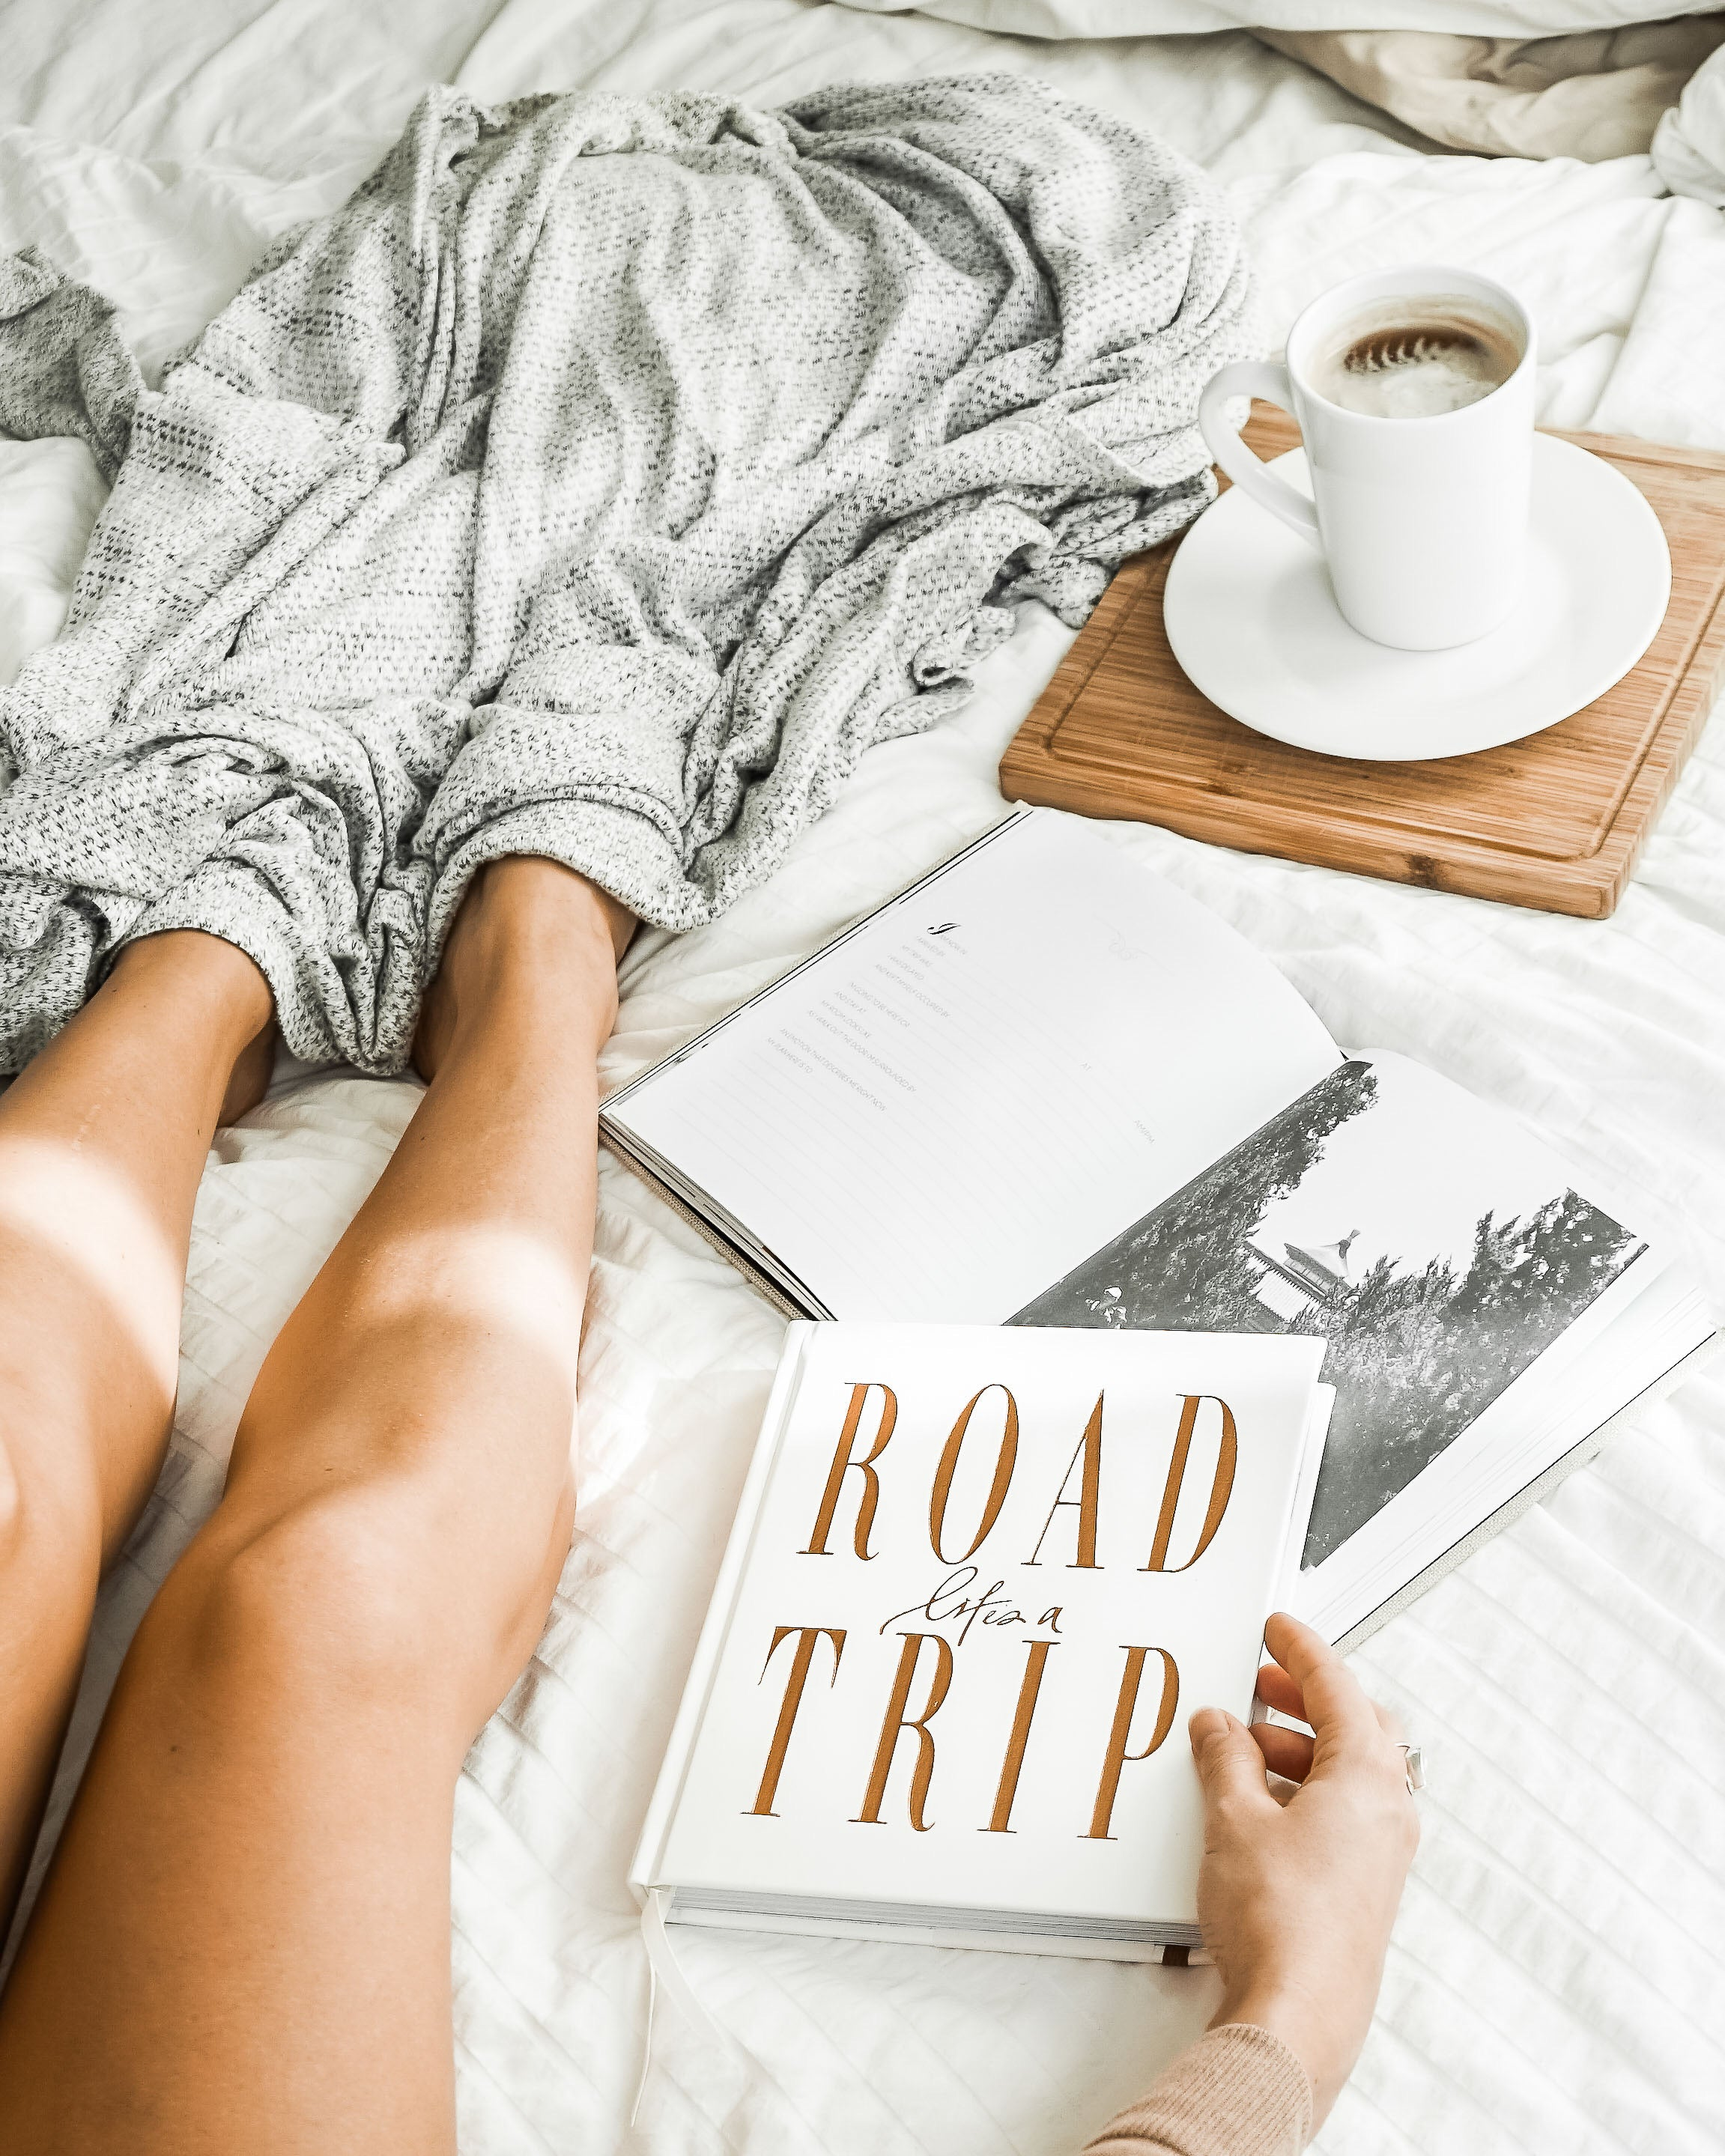 Life's a ROADTRIP - Luxe edition by Axel & Ash